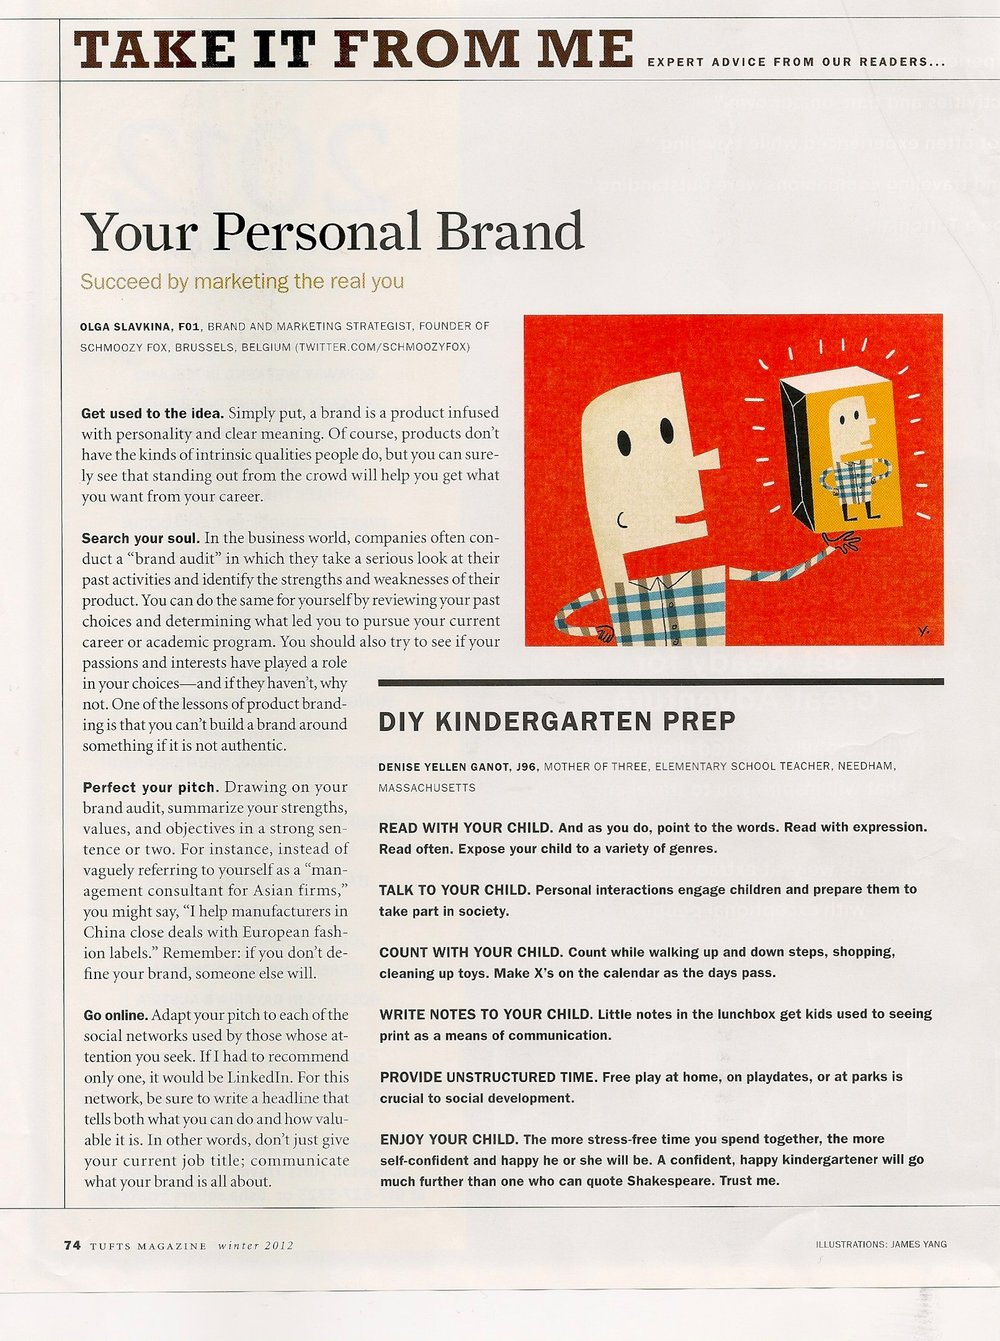 Your_Personal_Brand_article_by_Olga_Slavkina.jpg